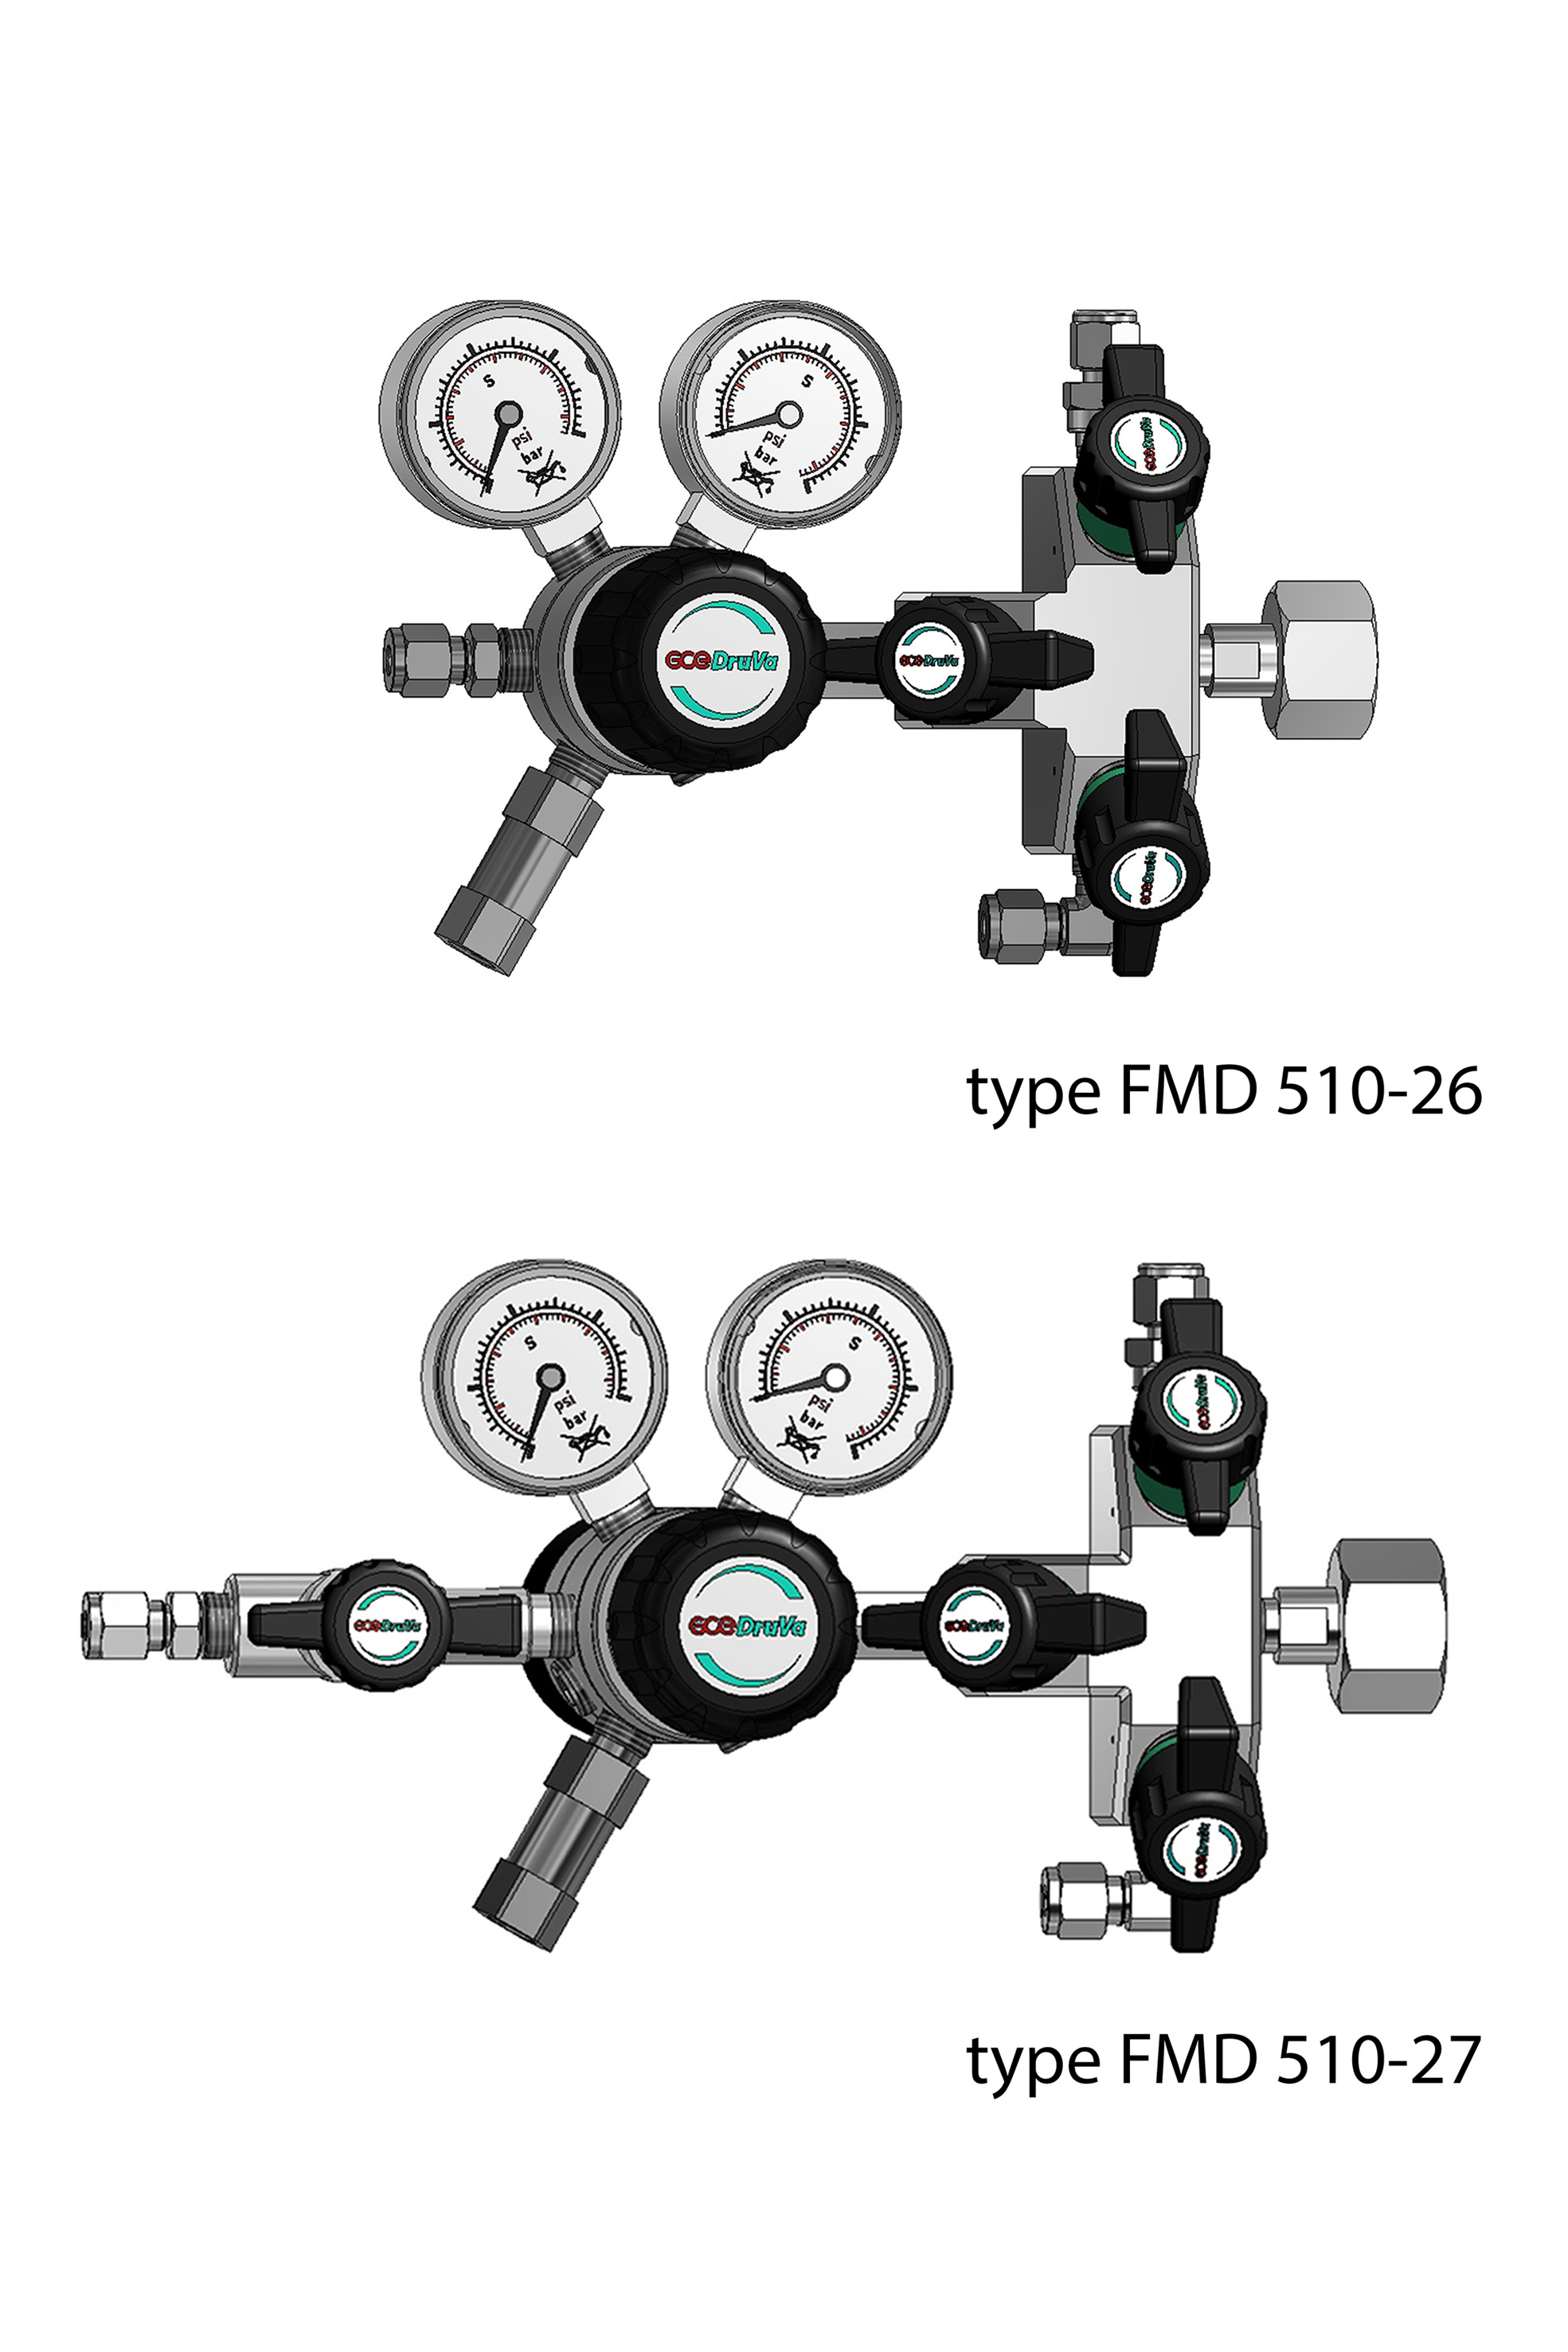 FMD 510/540 - DUAL STAGE REGULATOR 6.0 INERT PURGING, LOW INLET & VERY LOW OUTLET PRESSURE page image